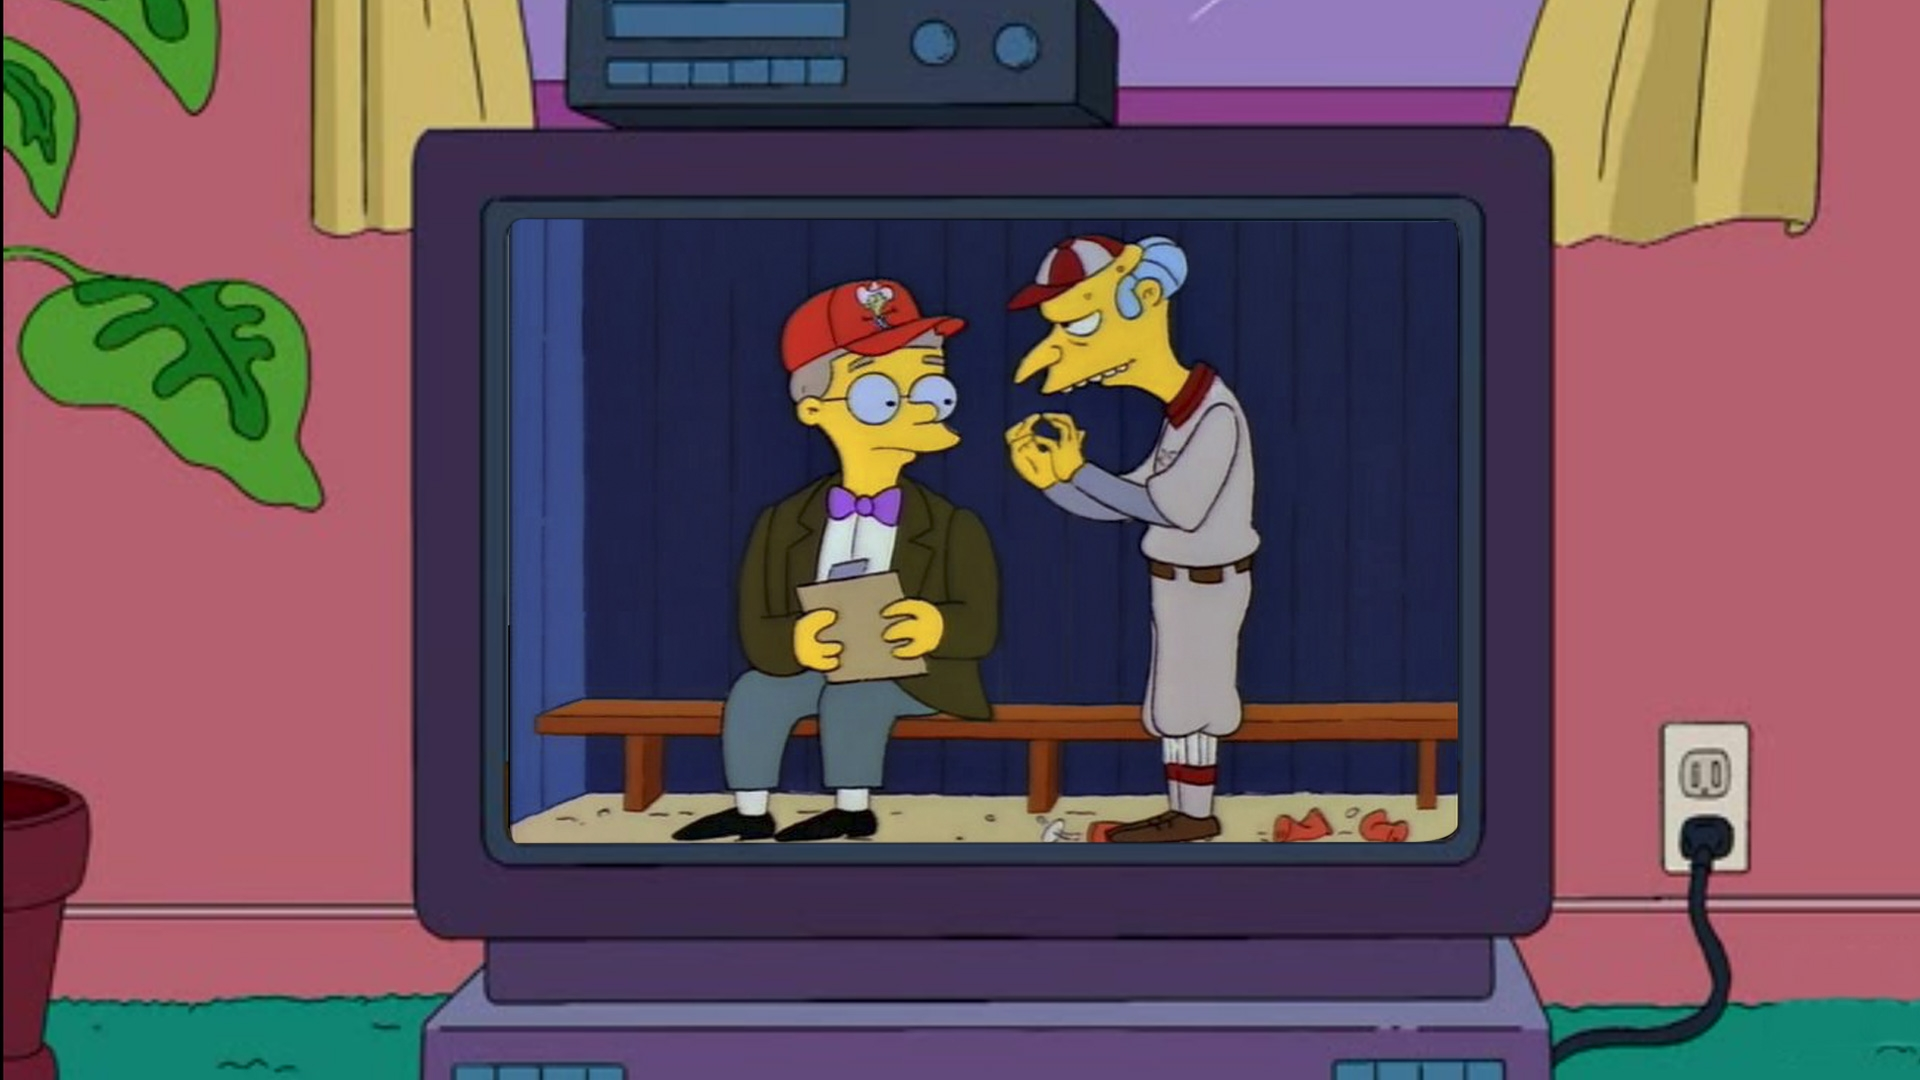 Simpsons-tv-020816-fox-ftrjpg_1vcupa0ce0ftk15uq5scdlc1zt